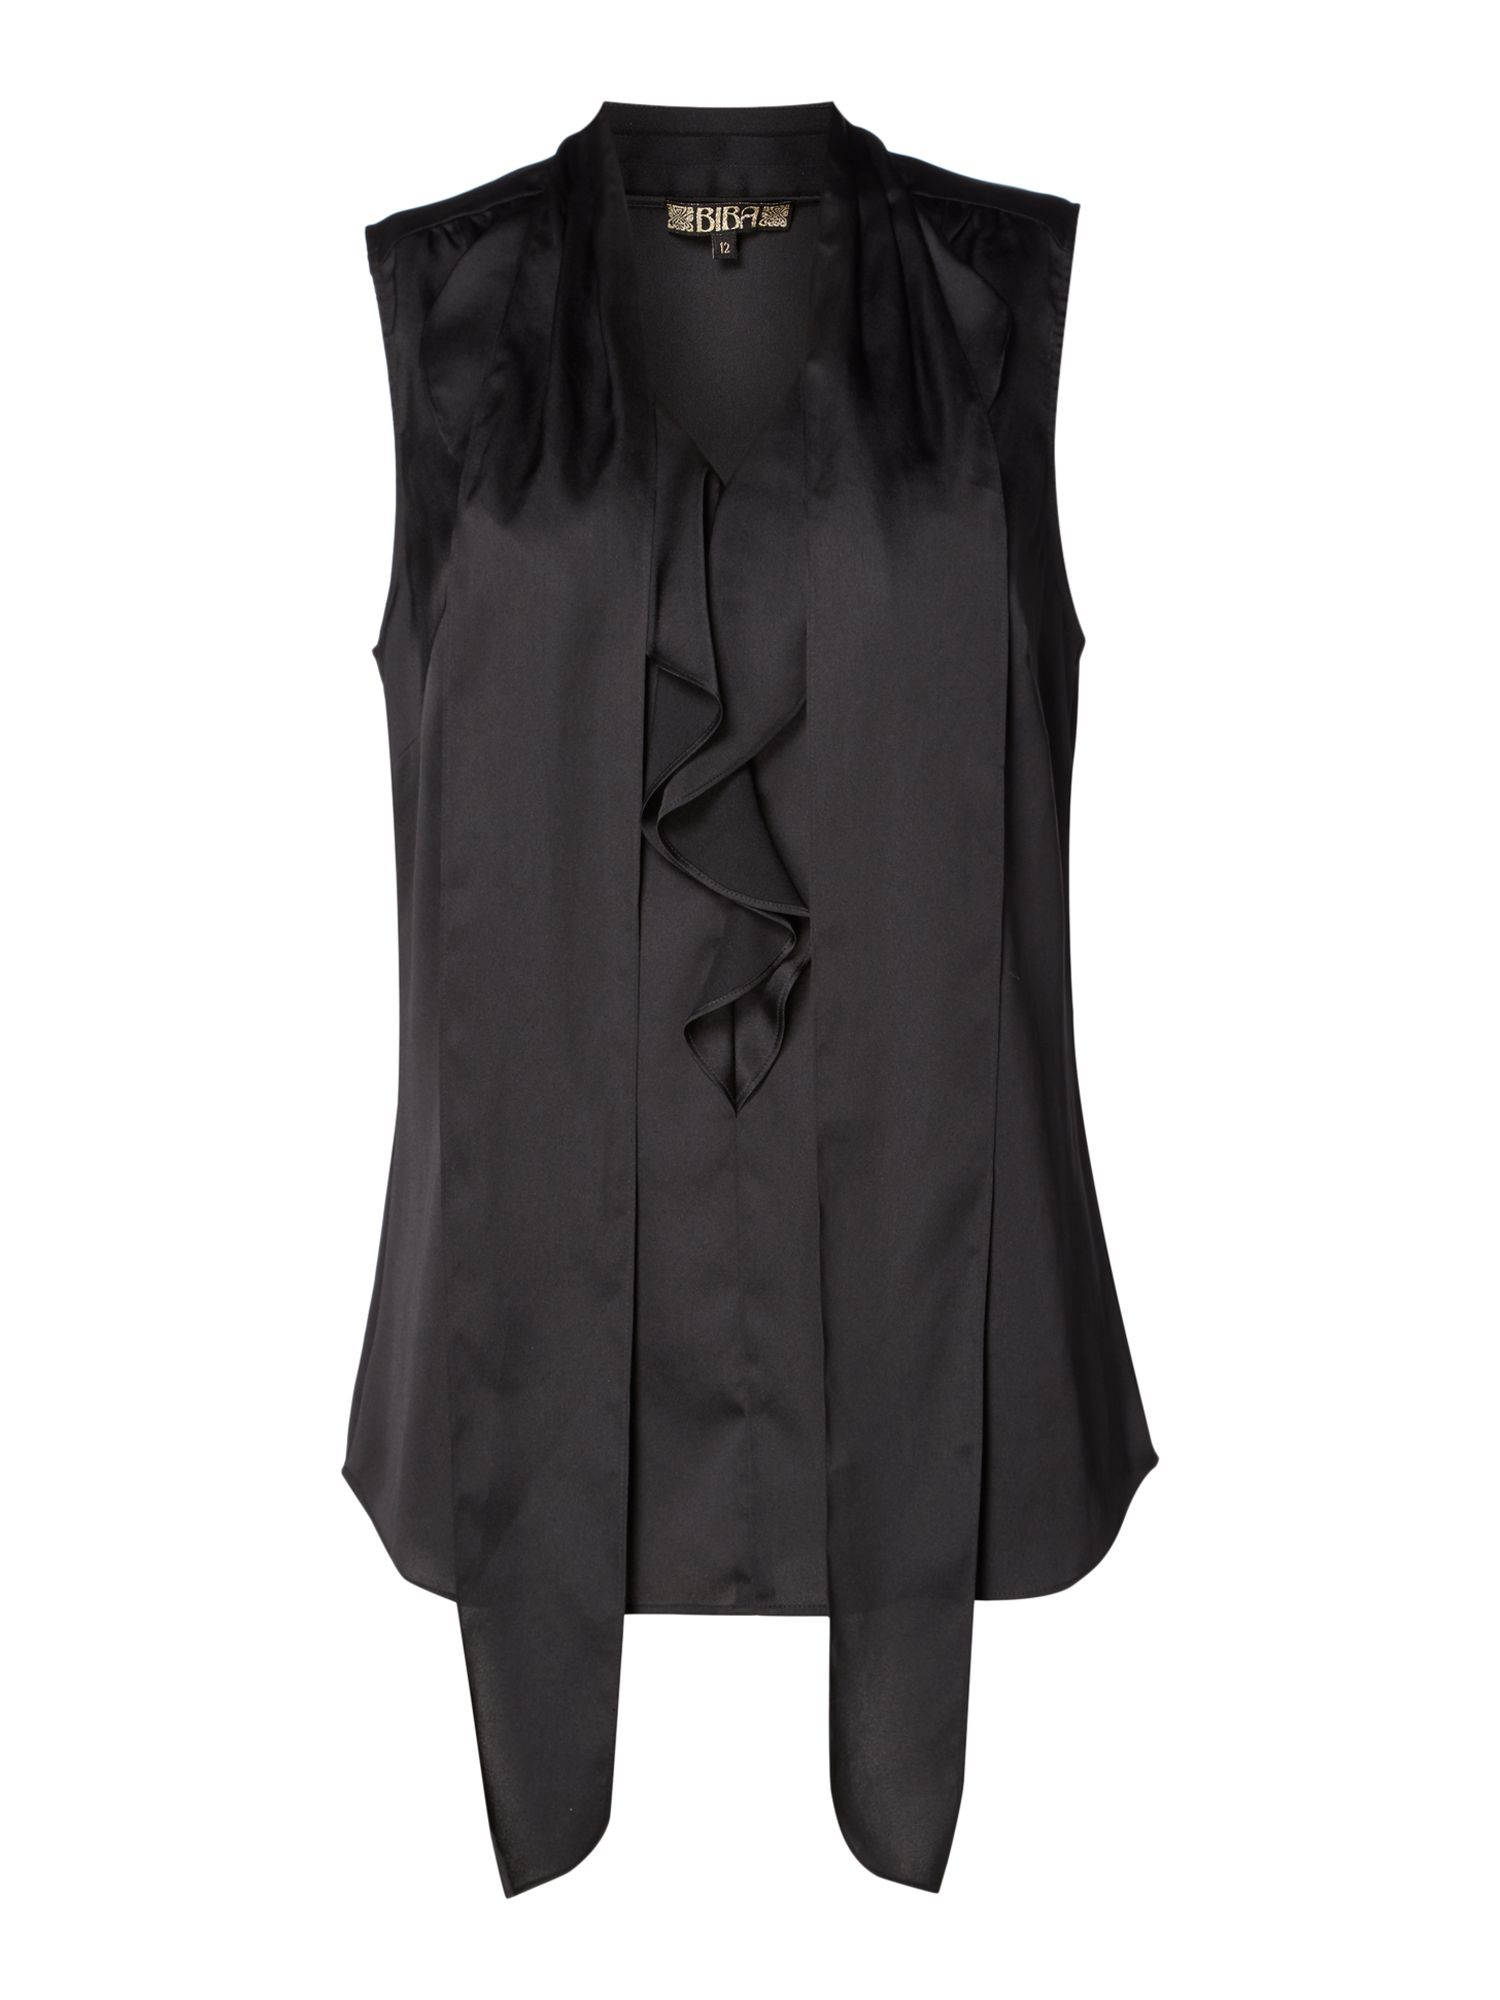 Biba Ruffle front sleeveless blouse, Black